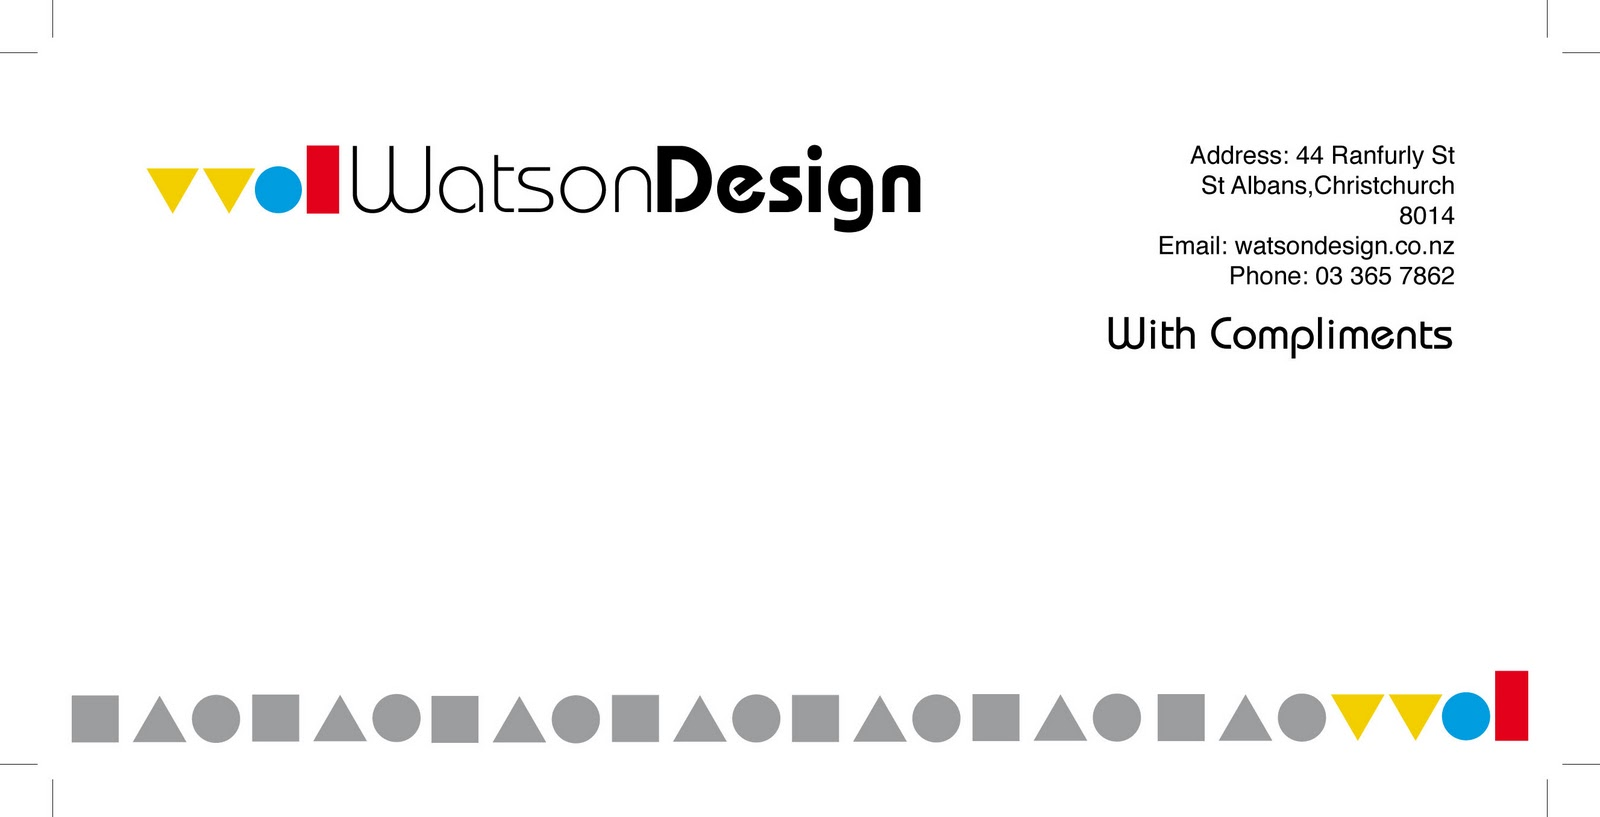 this is the compliments slip for my corporate identity brief